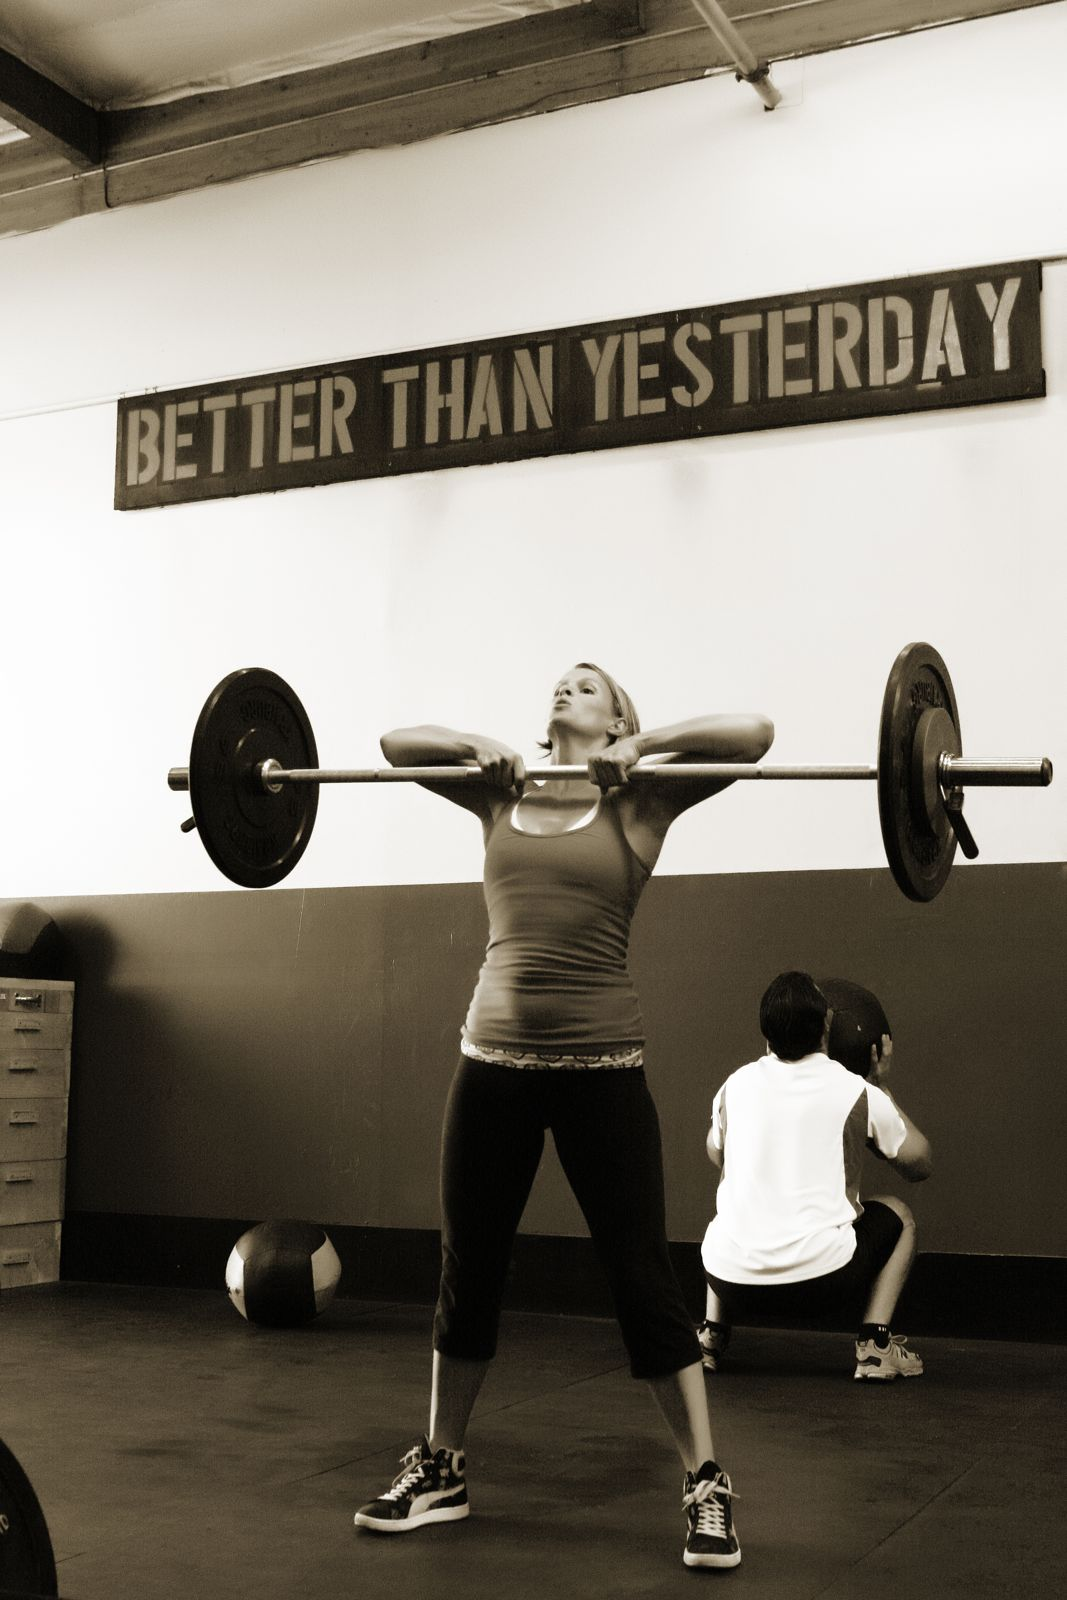 CrossFit: Forging Elite Fitness: Tuesday 090825